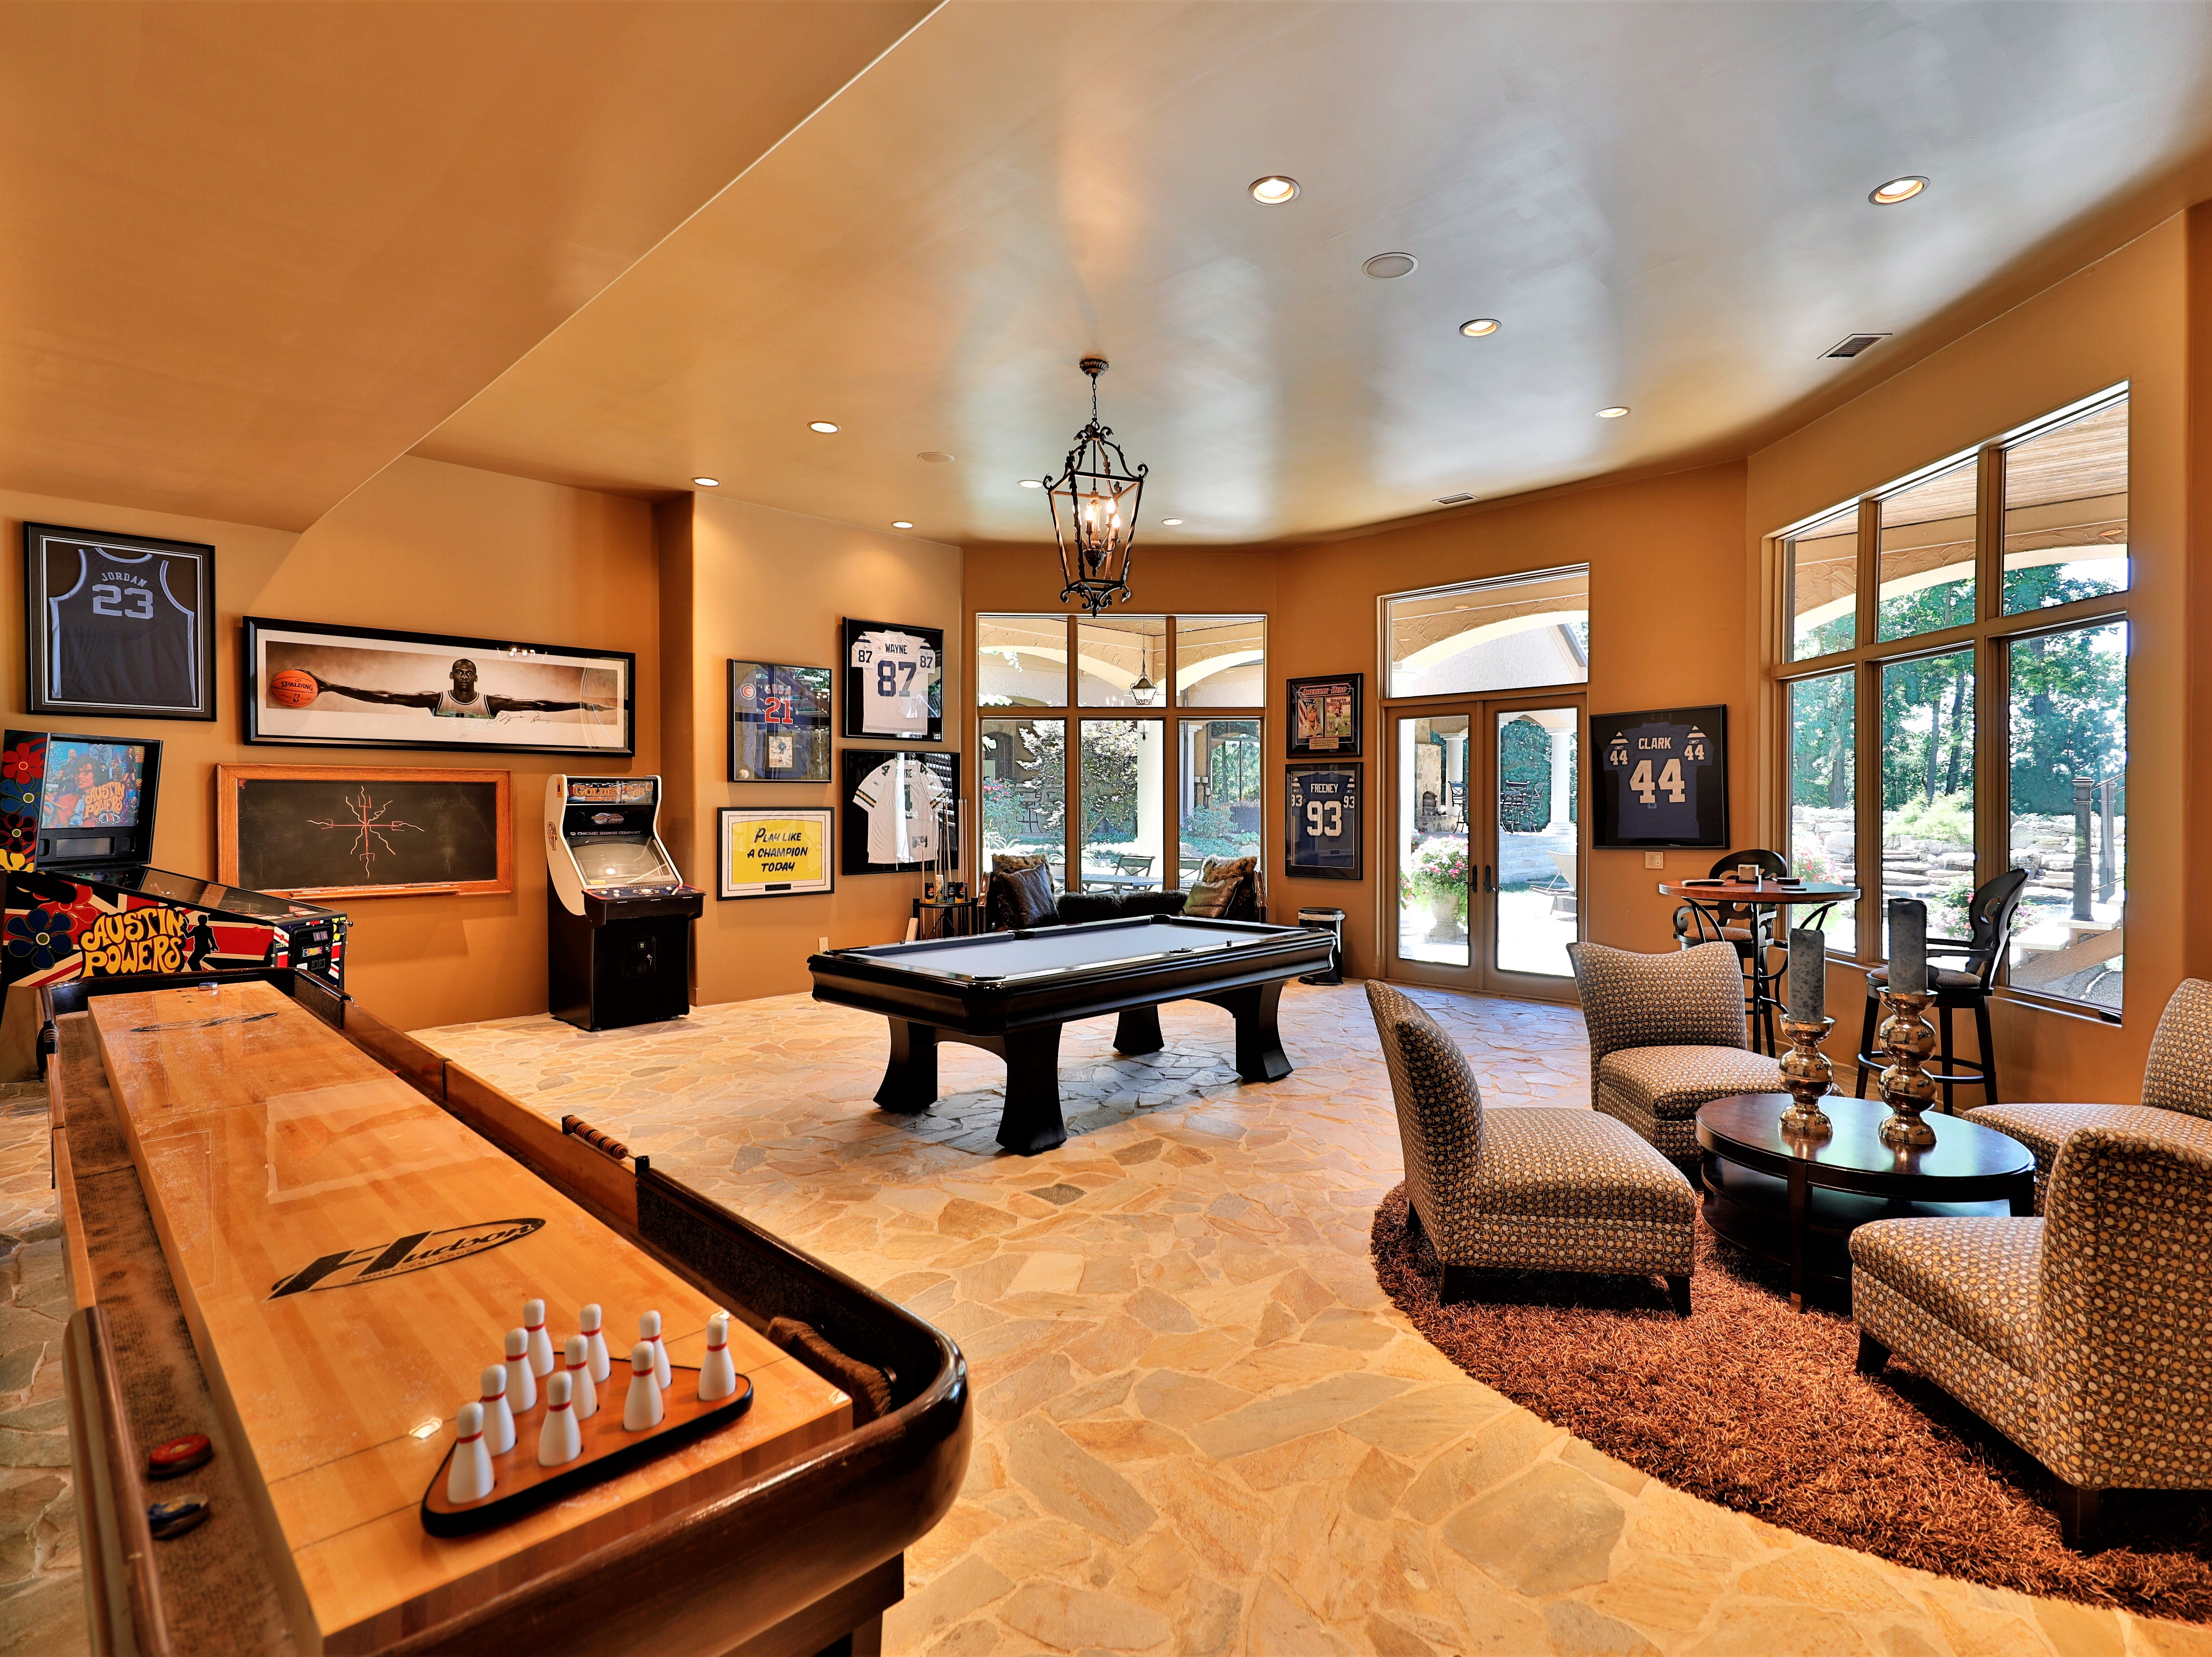 The walkout basement includes room for a pool table, shuffleboard table and, of course, a full kitchen.